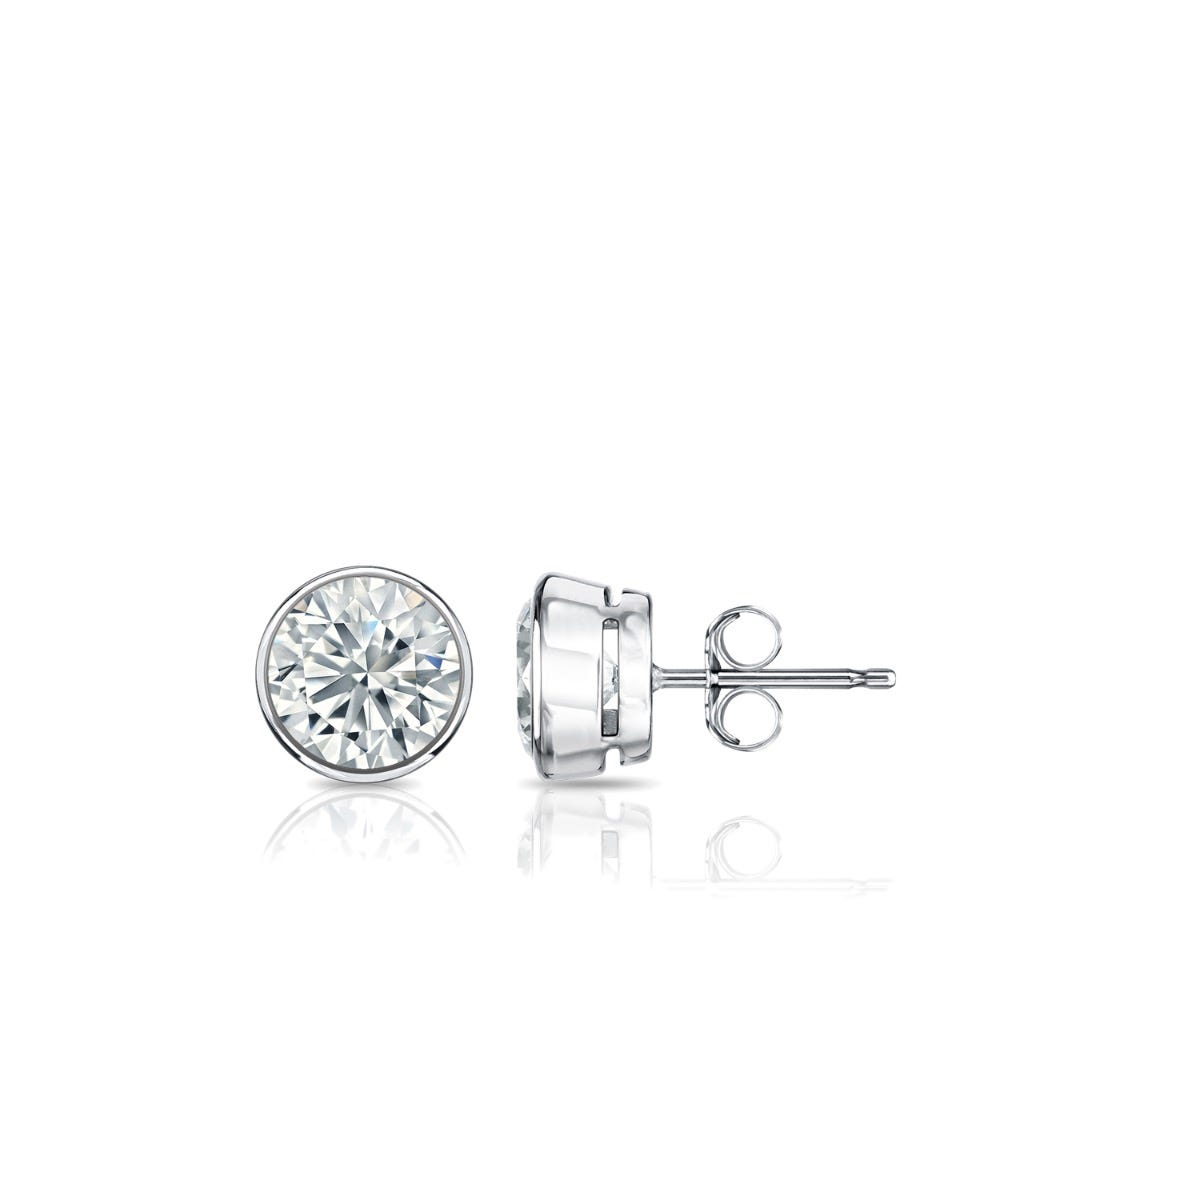 Diamond Round Bezel-Set 3/8ctw. Solitaire Stud (IJ-SI1) Earrings in 14K White Gold